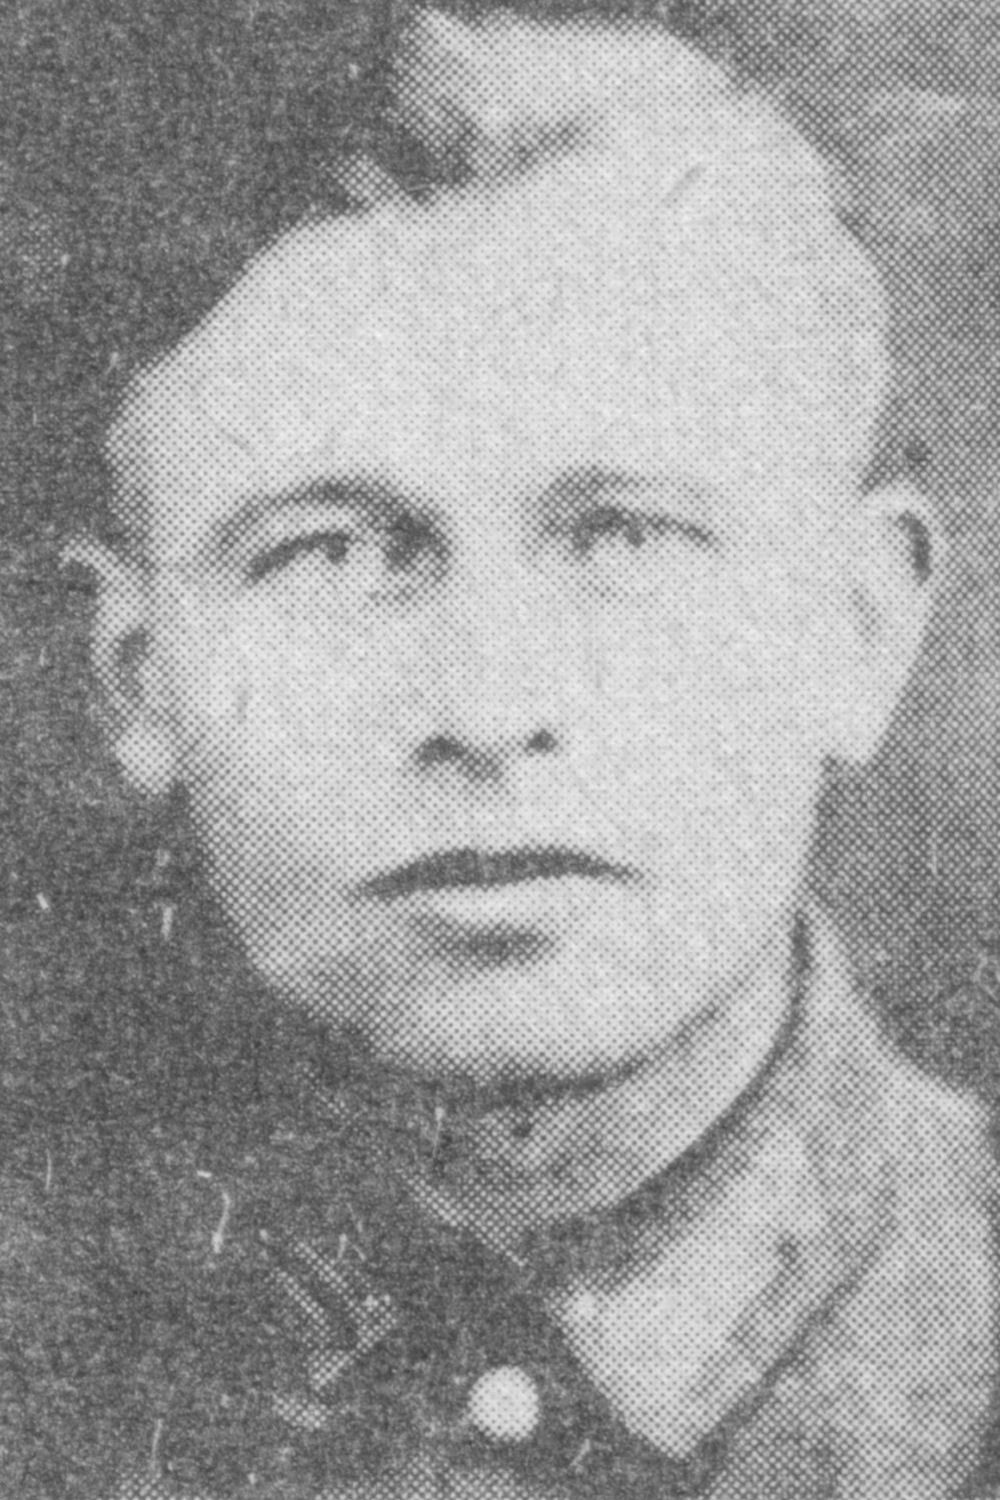 Pohl Erich